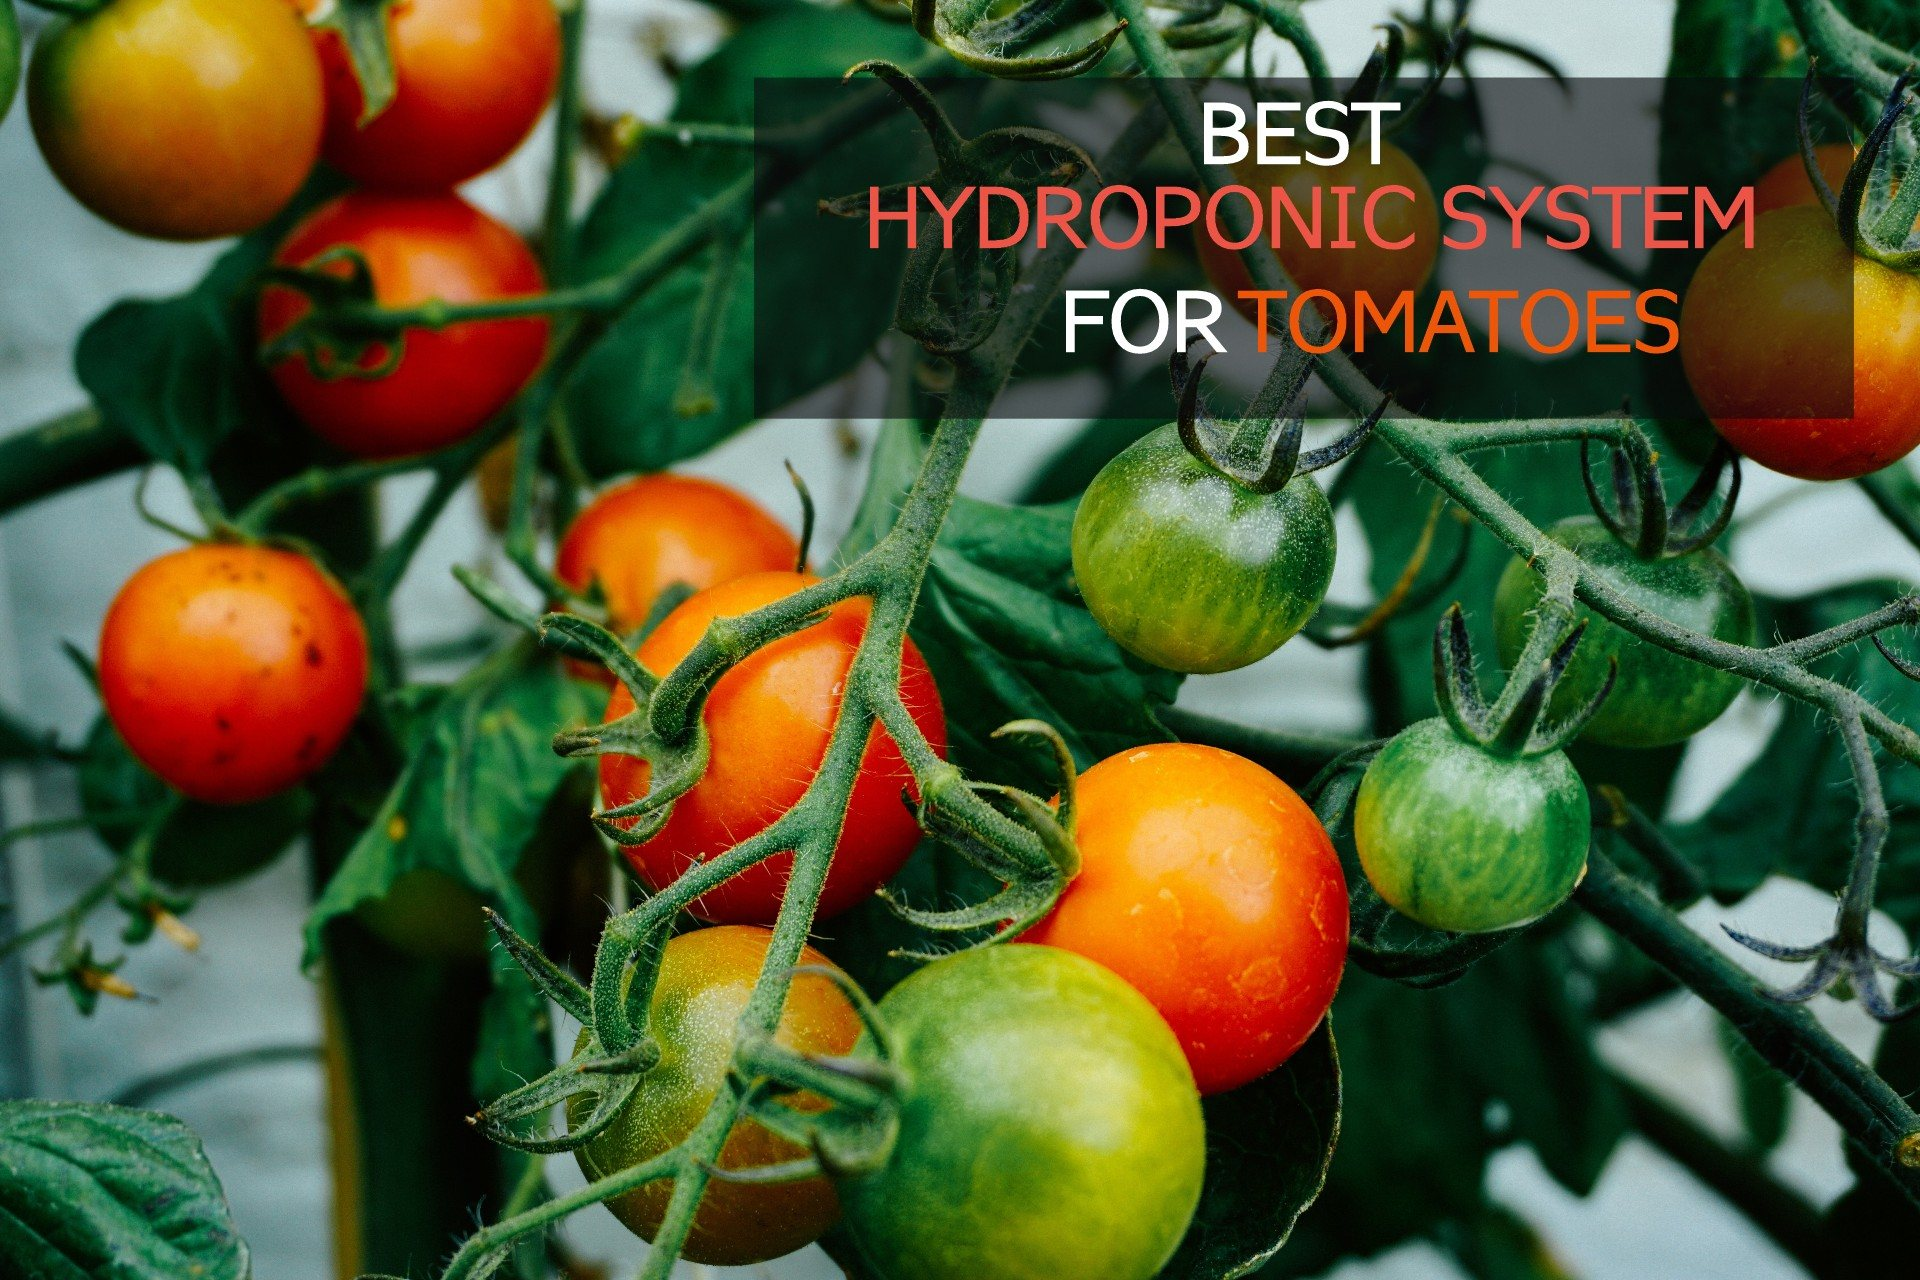 best hydroponic system for tomatoes